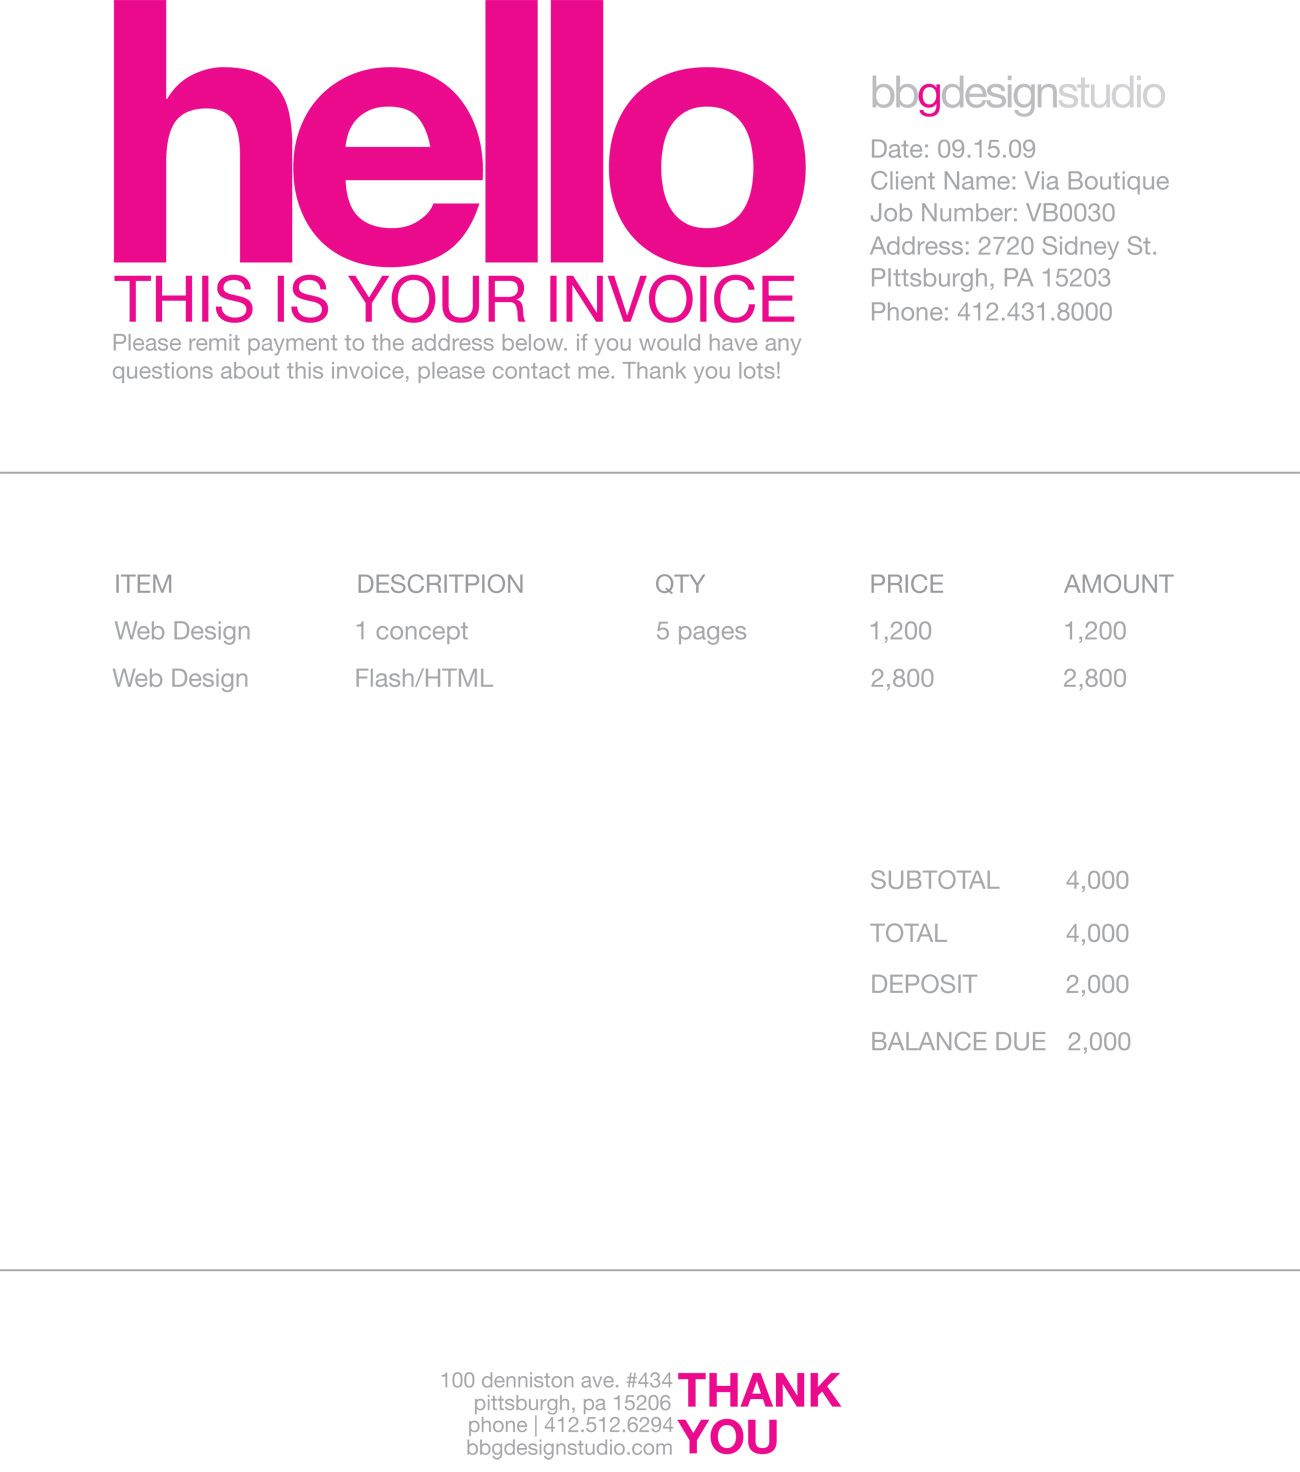 Hius  Outstanding  Images About Invoice Design On Pinterest With Extraordinary Invoice By Email Besides Meaning Of Invoice Price Furthermore Proforma Invoice Sample Doc With Divine Invoice Access Database Also Invoice Clerk Duties In Addition Example Proforma Invoice And Invoice Sale As Well As Free Tax Invoice Template Australia Additionally Band Invoice Template From Pinterestcom With Hius  Extraordinary  Images About Invoice Design On Pinterest With Divine Invoice By Email Besides Meaning Of Invoice Price Furthermore Proforma Invoice Sample Doc And Outstanding Invoice Access Database Also Invoice Clerk Duties In Addition Example Proforma Invoice From Pinterestcom